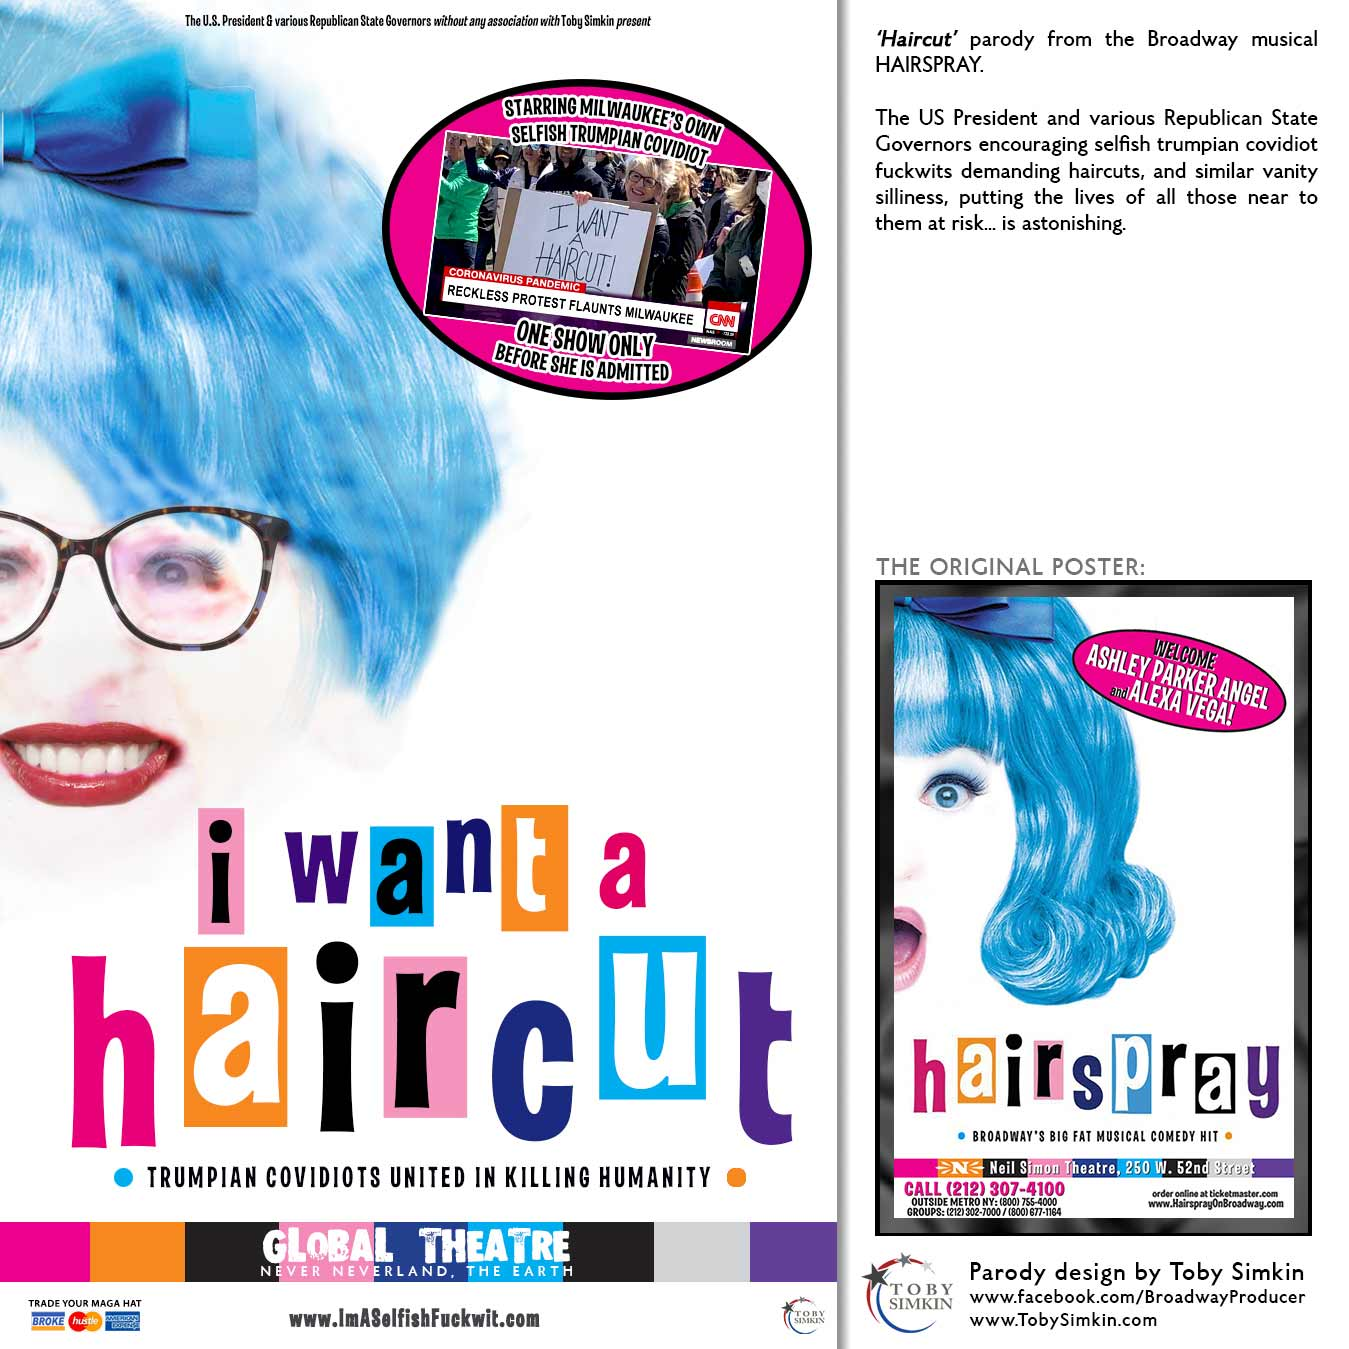 parody from the Broadway musical HAIRSPRAY